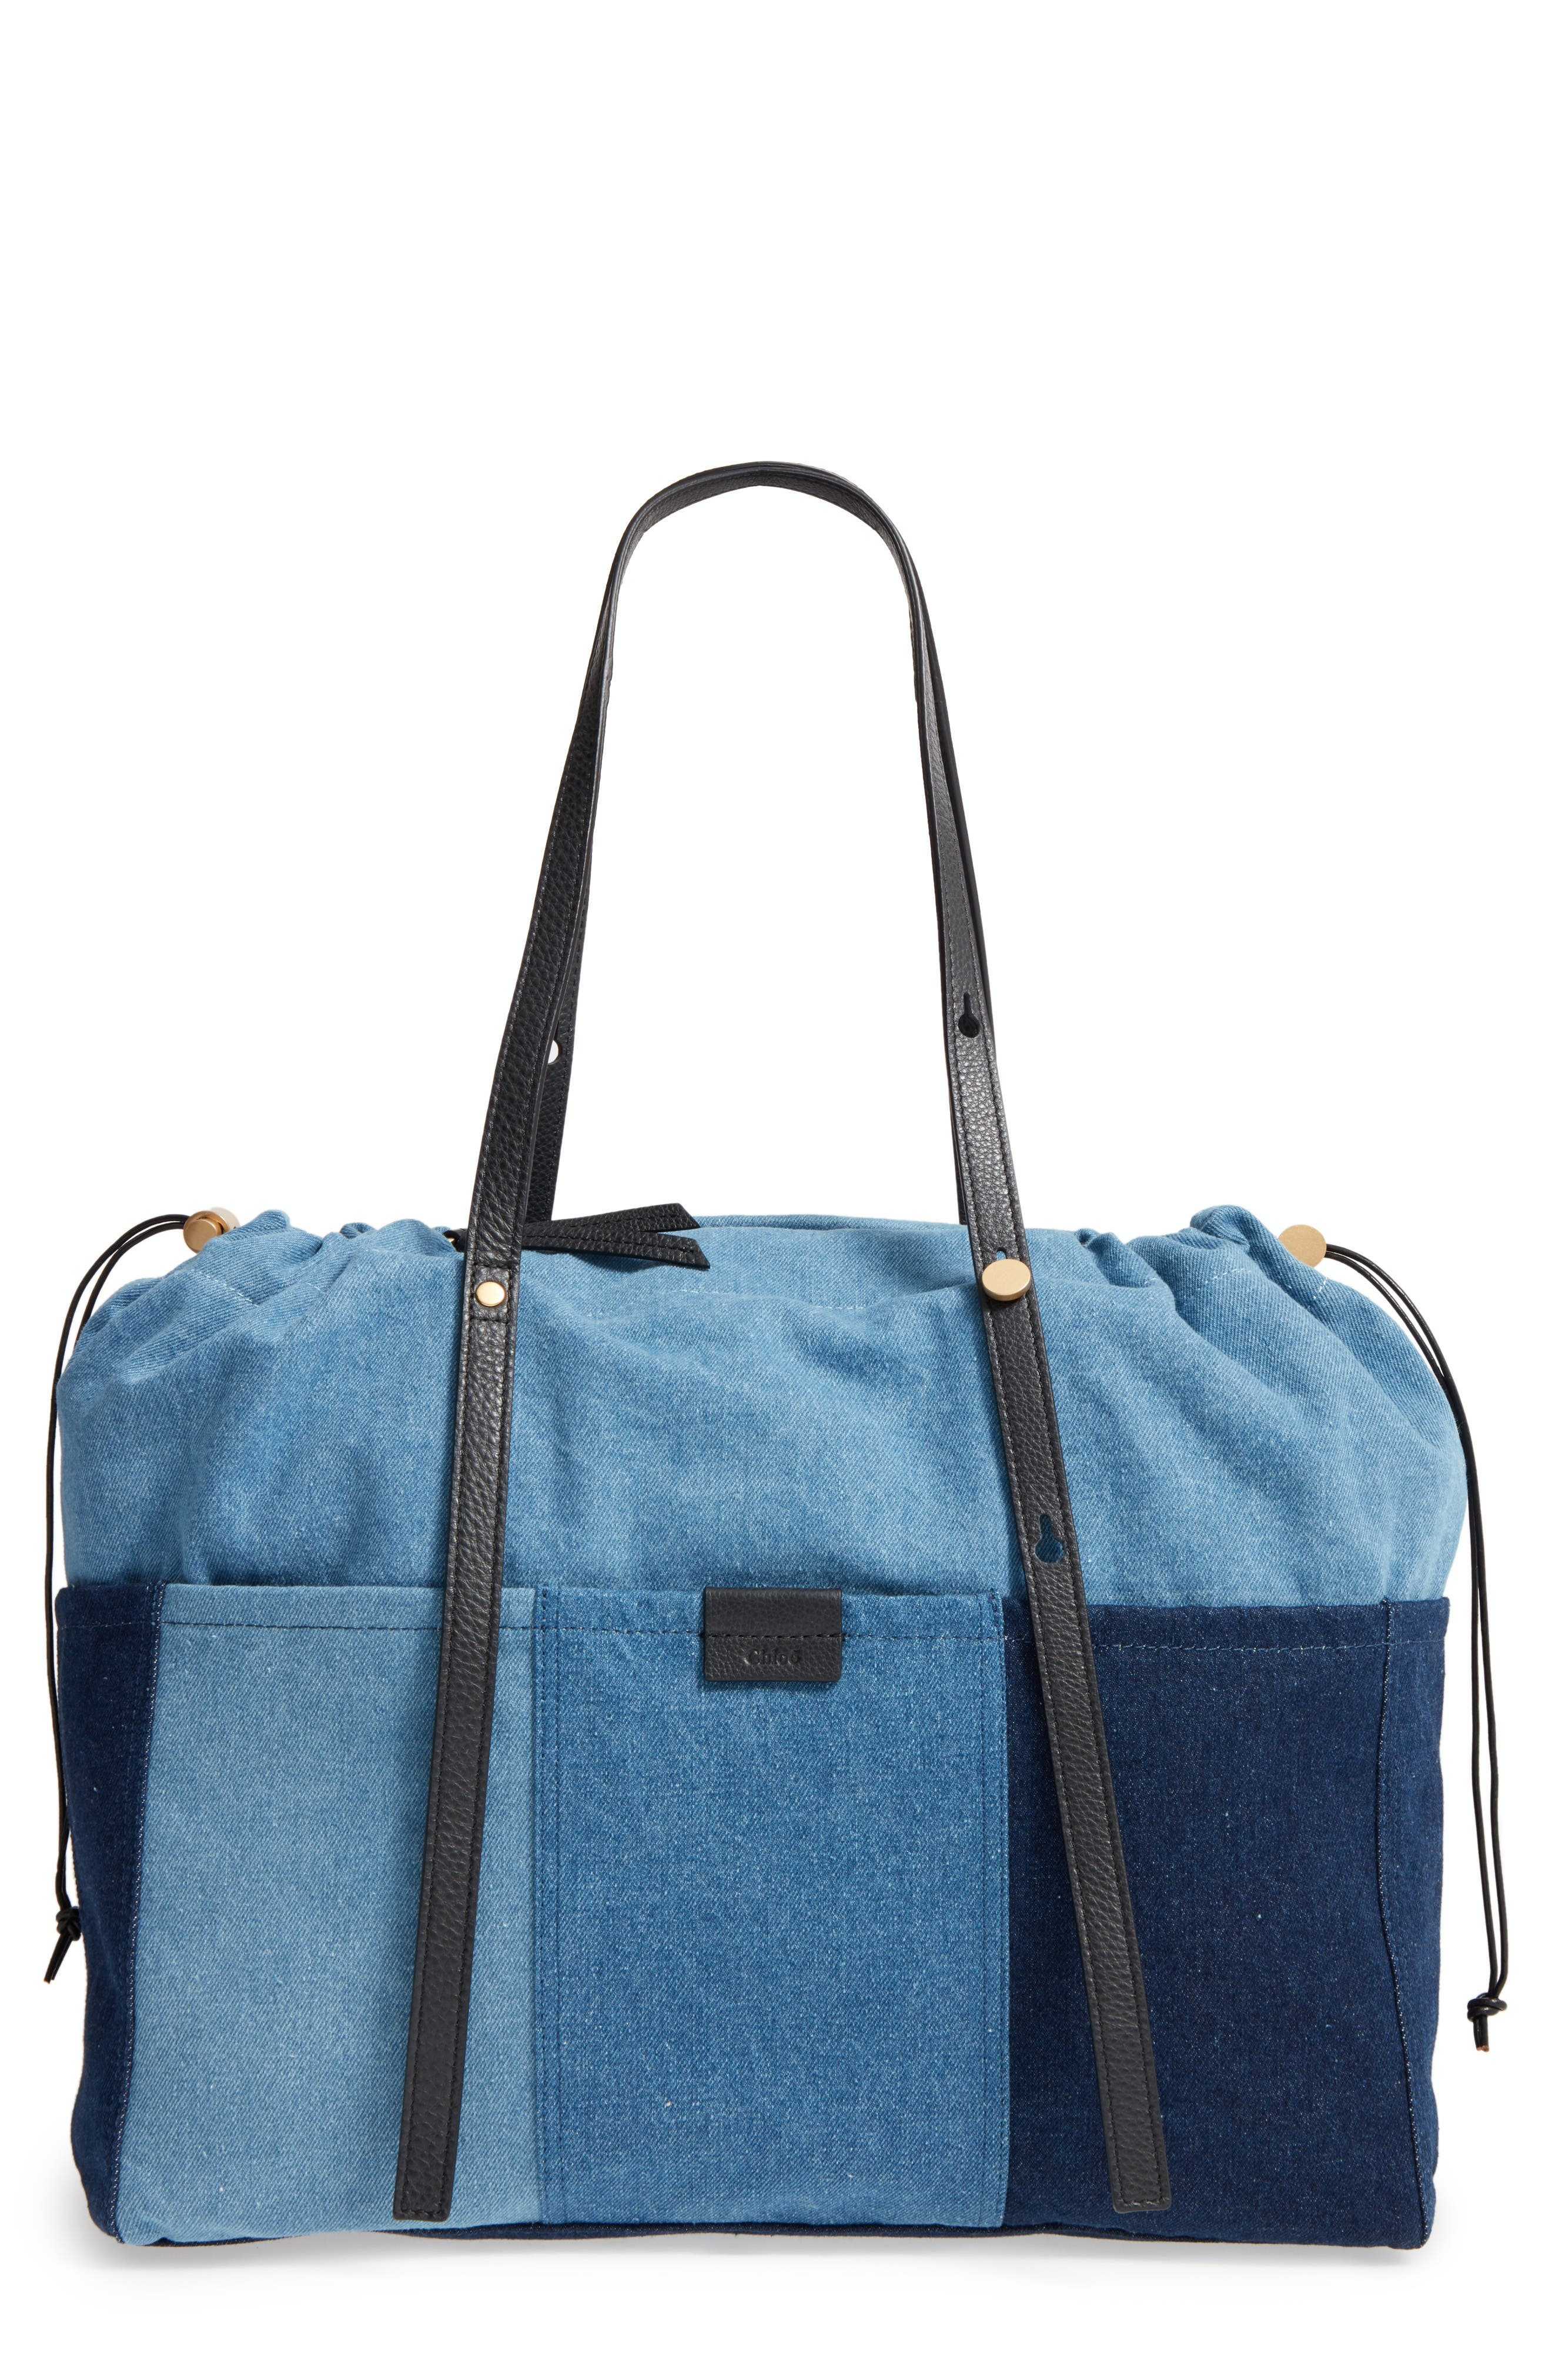 Chloé Denim Diaper Bag